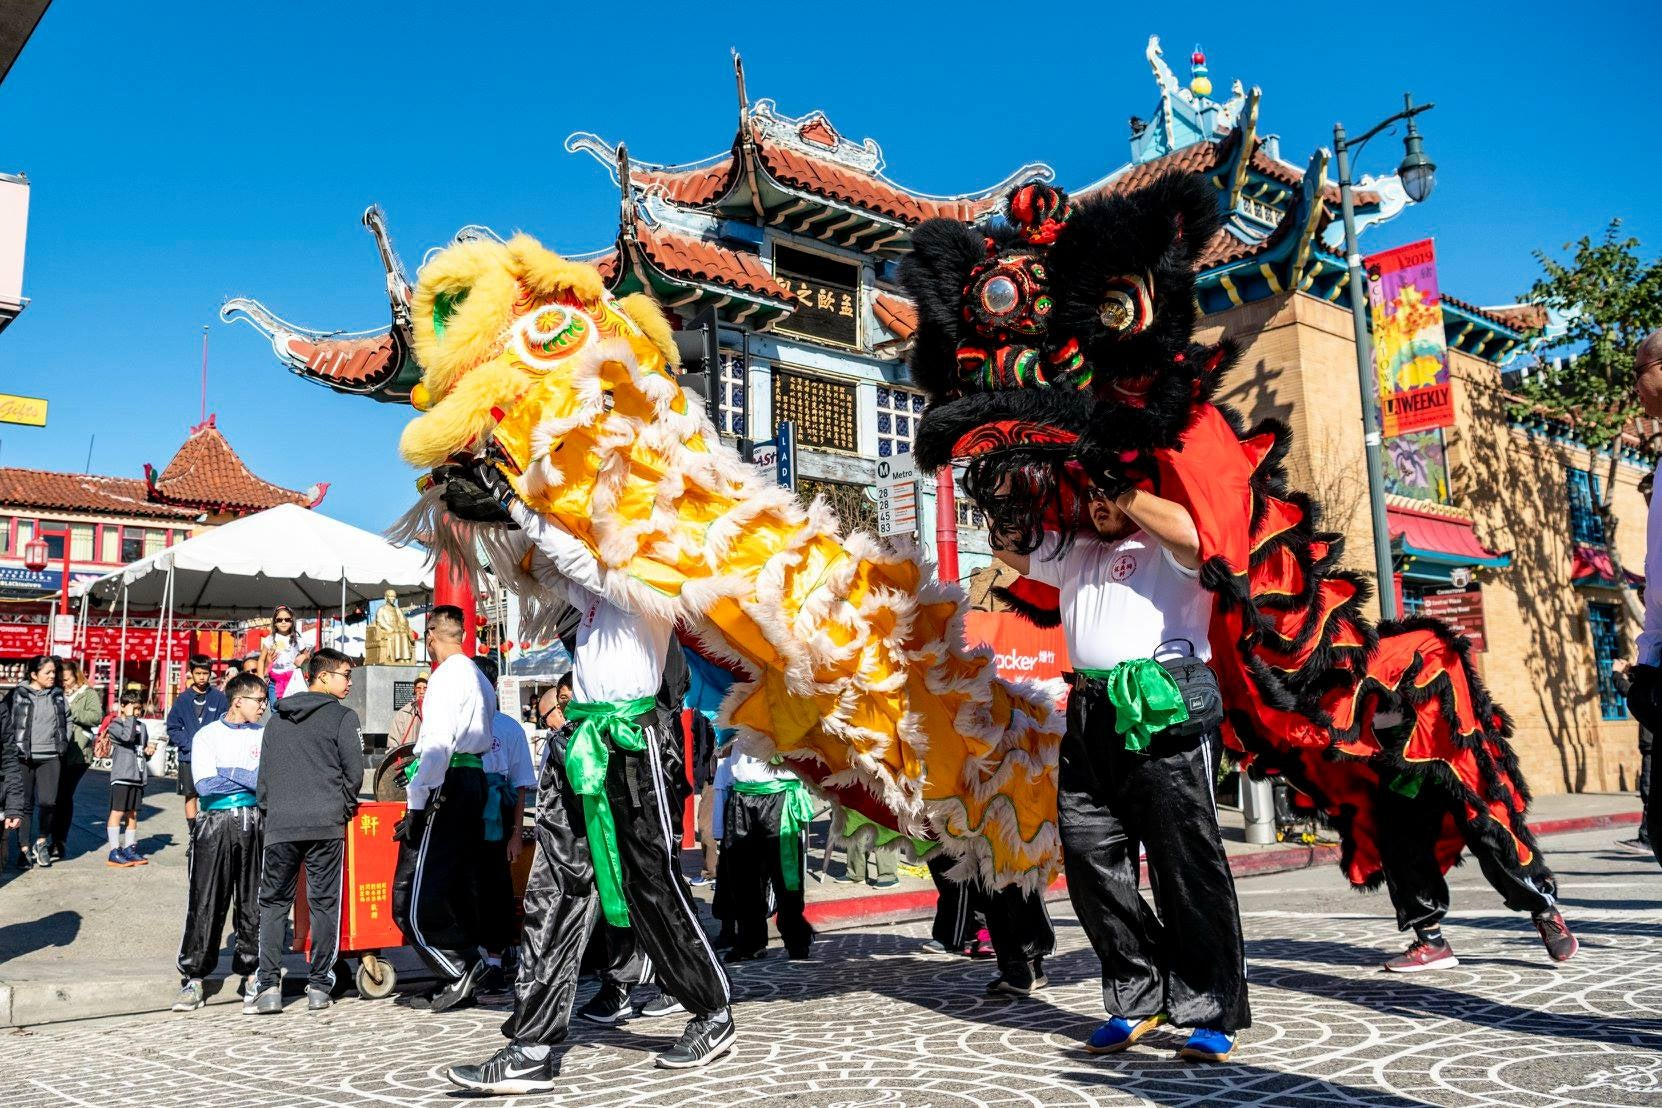 Celebrate Lunar New Year in Los Angeles | Discover Los Angeles